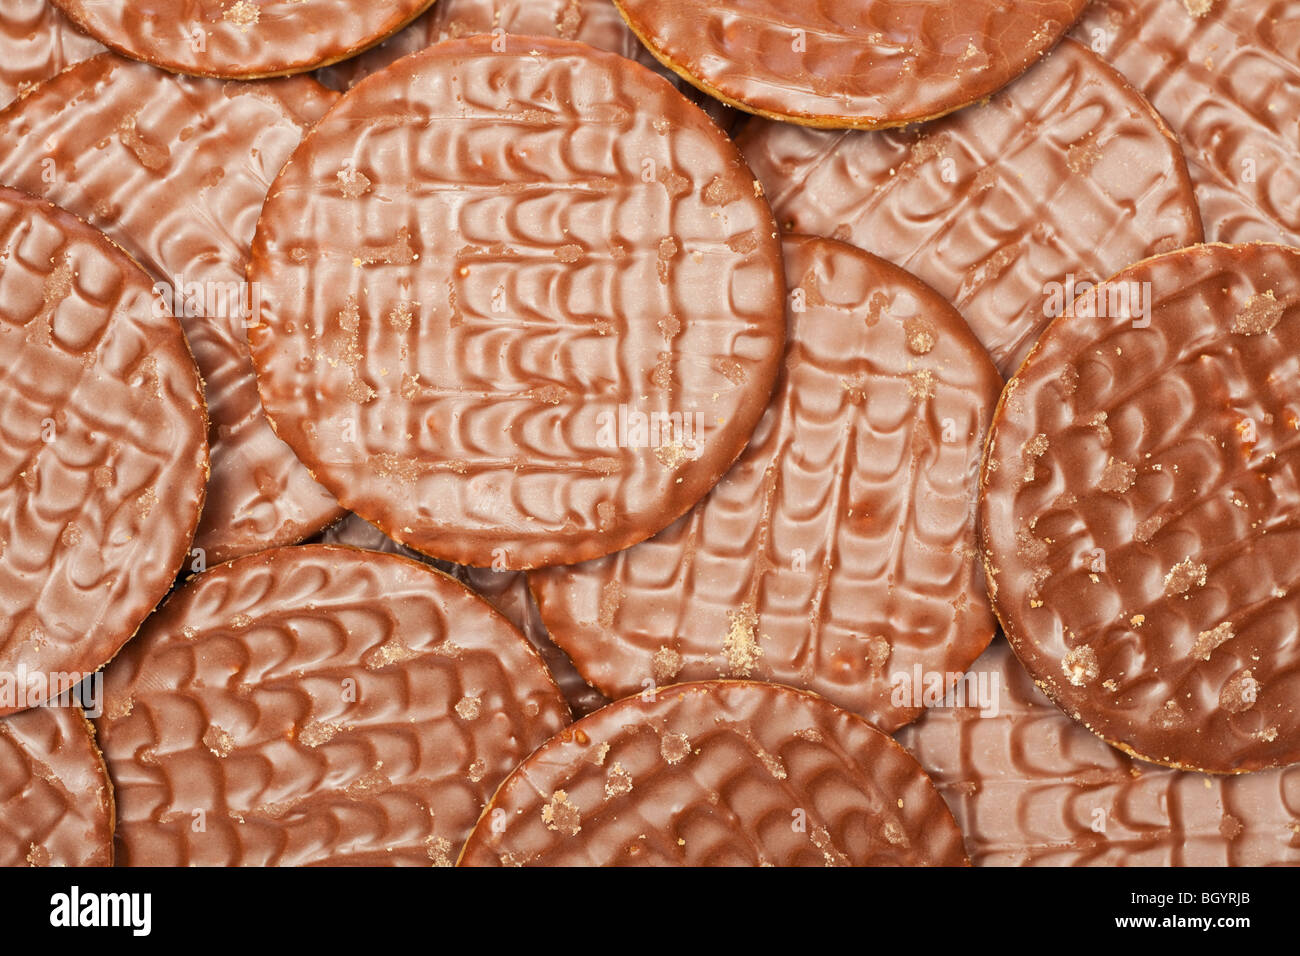 Close up group of milk chocolate digestive biscuits - overhead - Stock Image